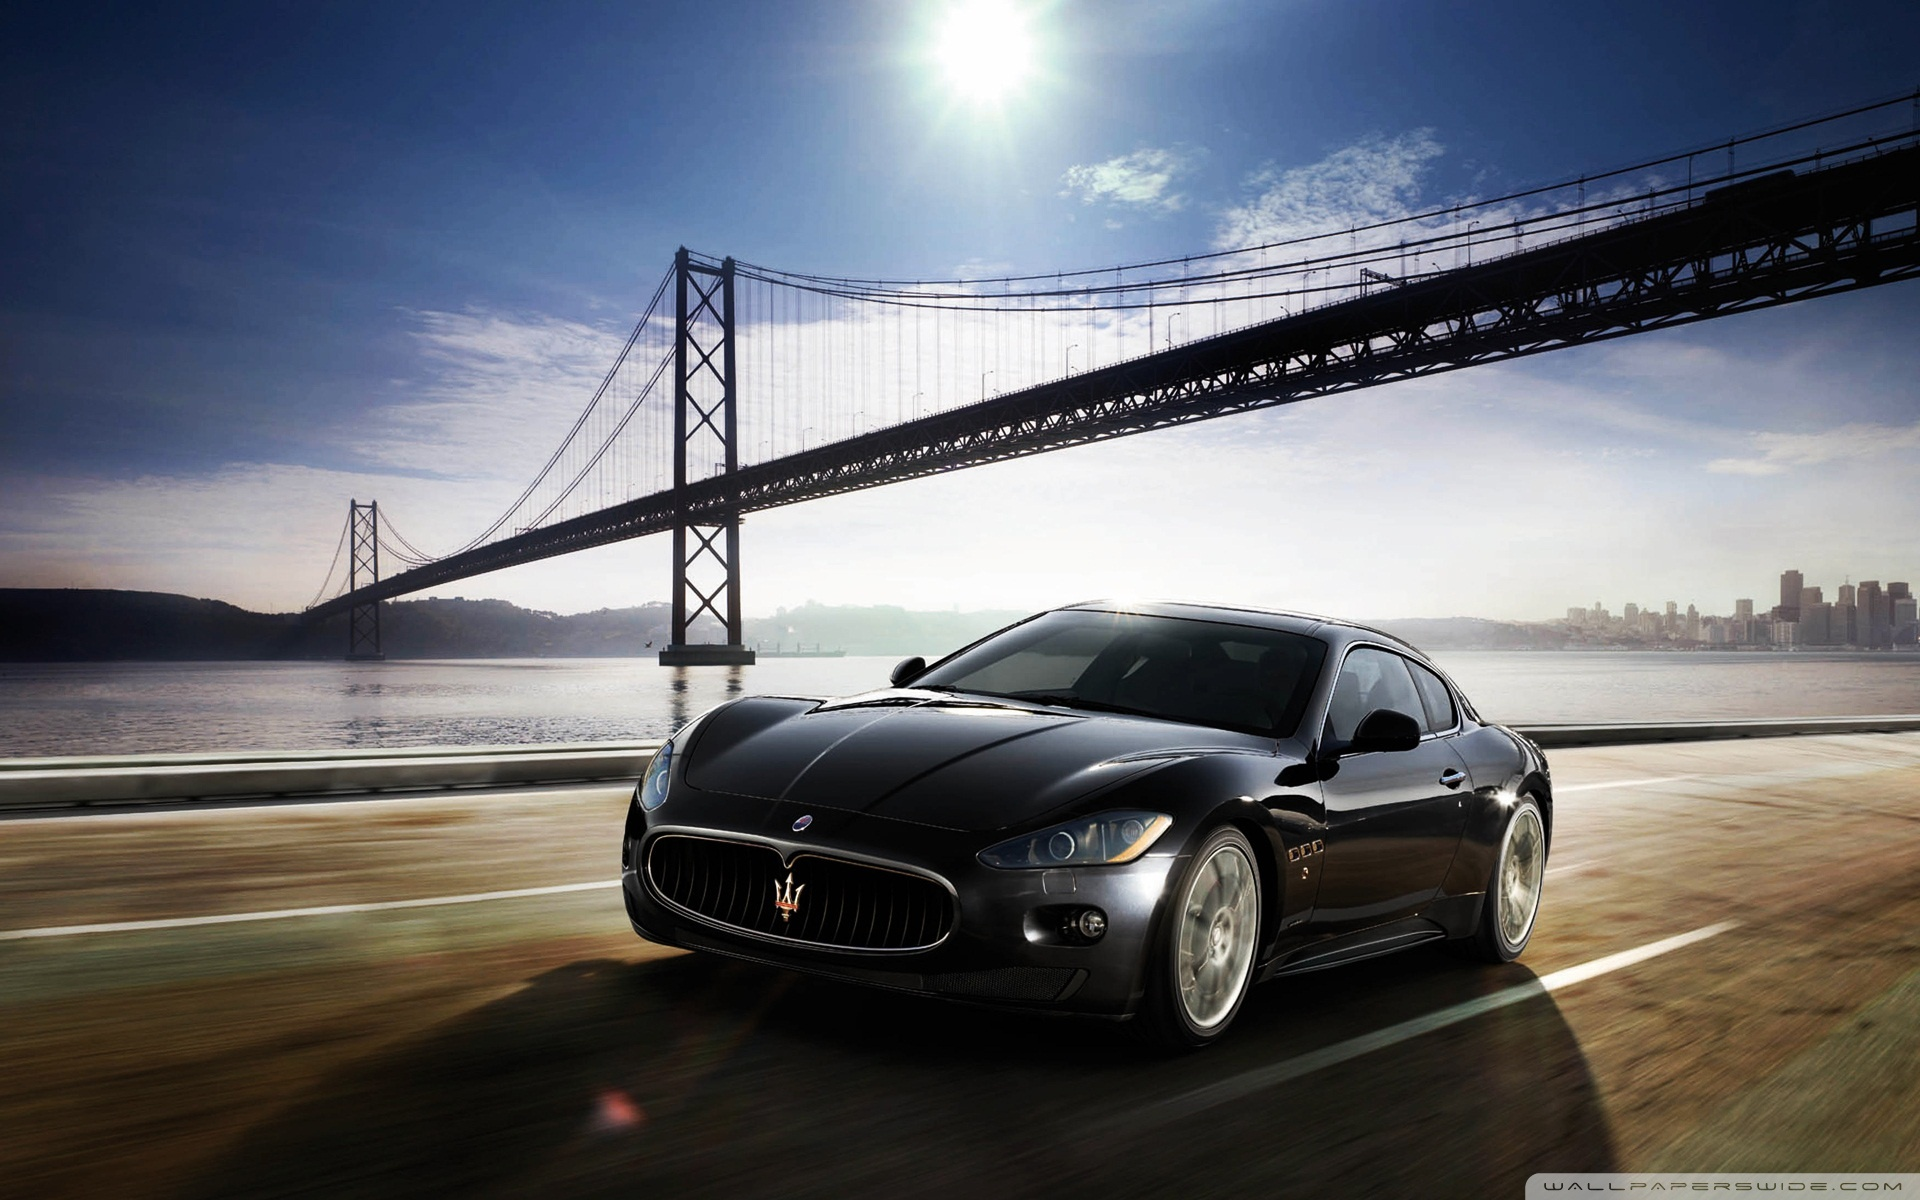 Maserati GranTurismo Wallpapers and Background Images   stmednet 1920x1200